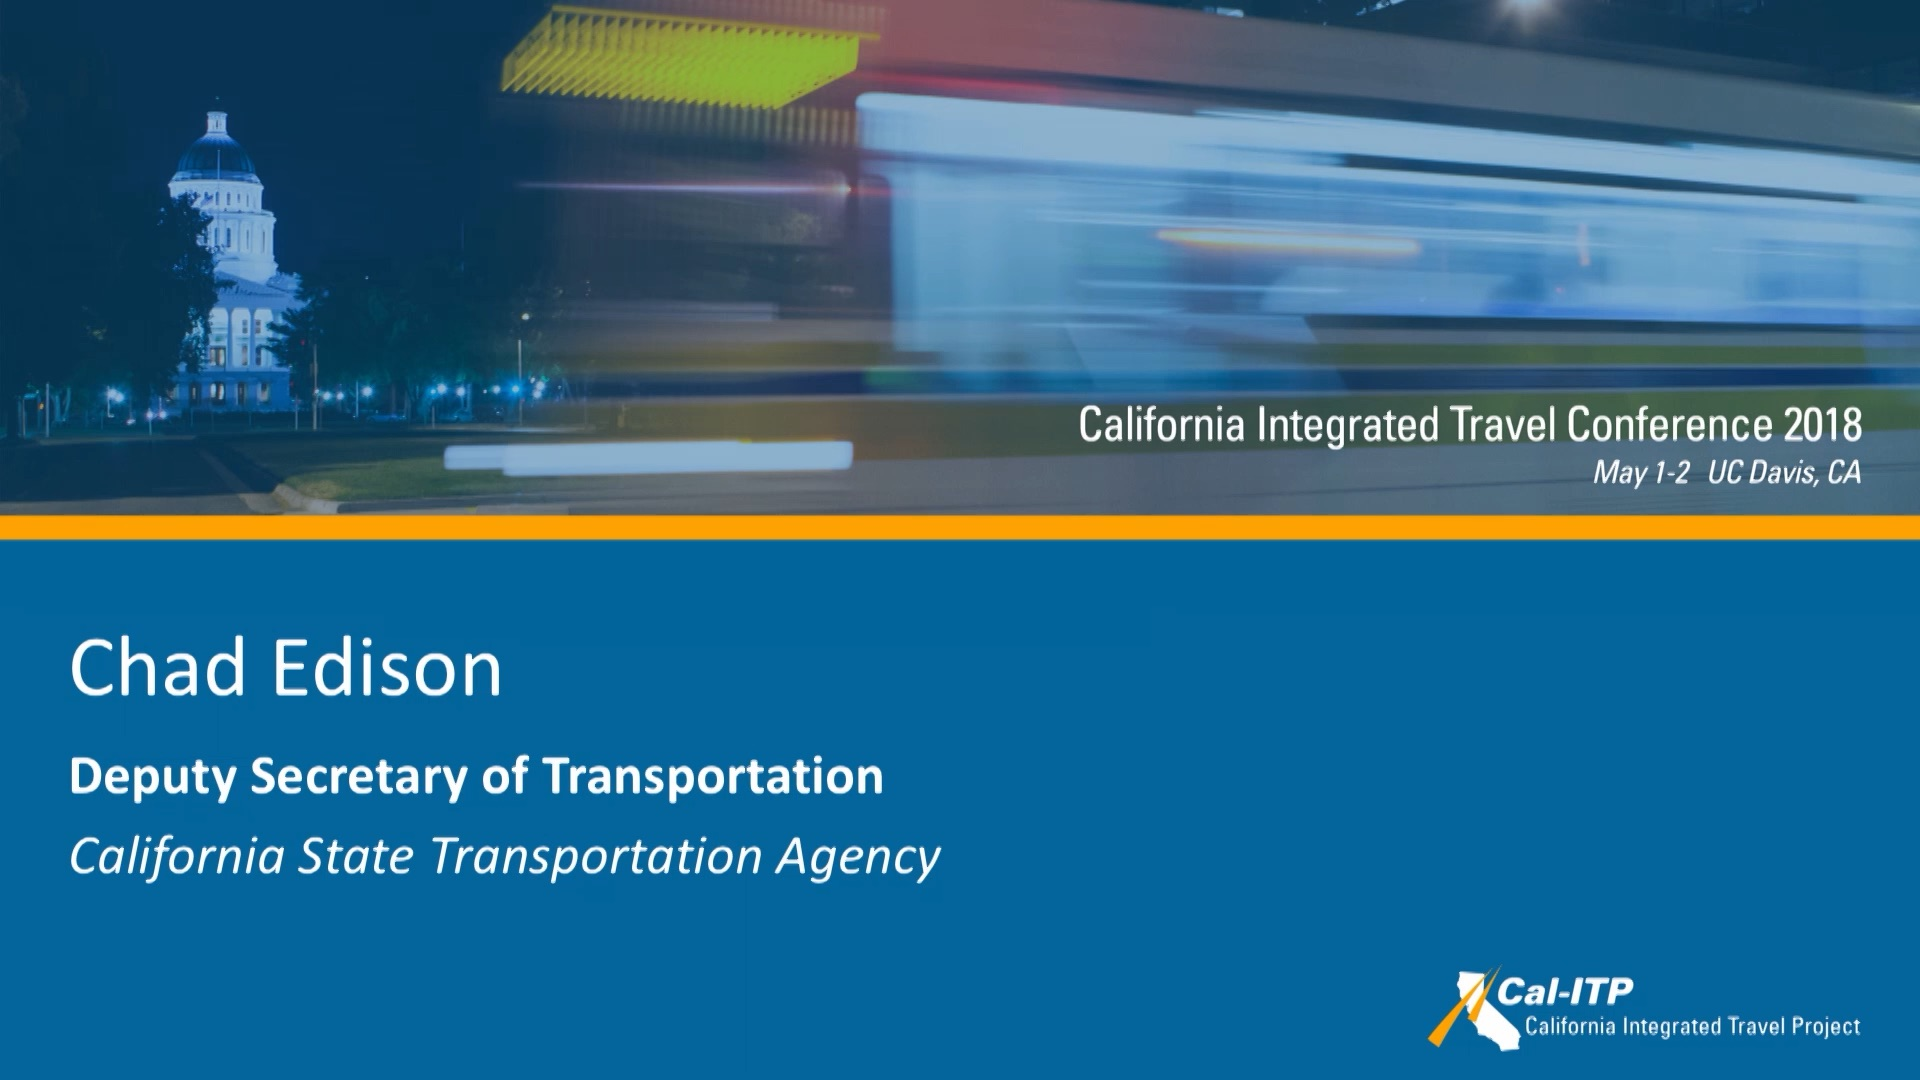 4. Intelligent Mobility for California